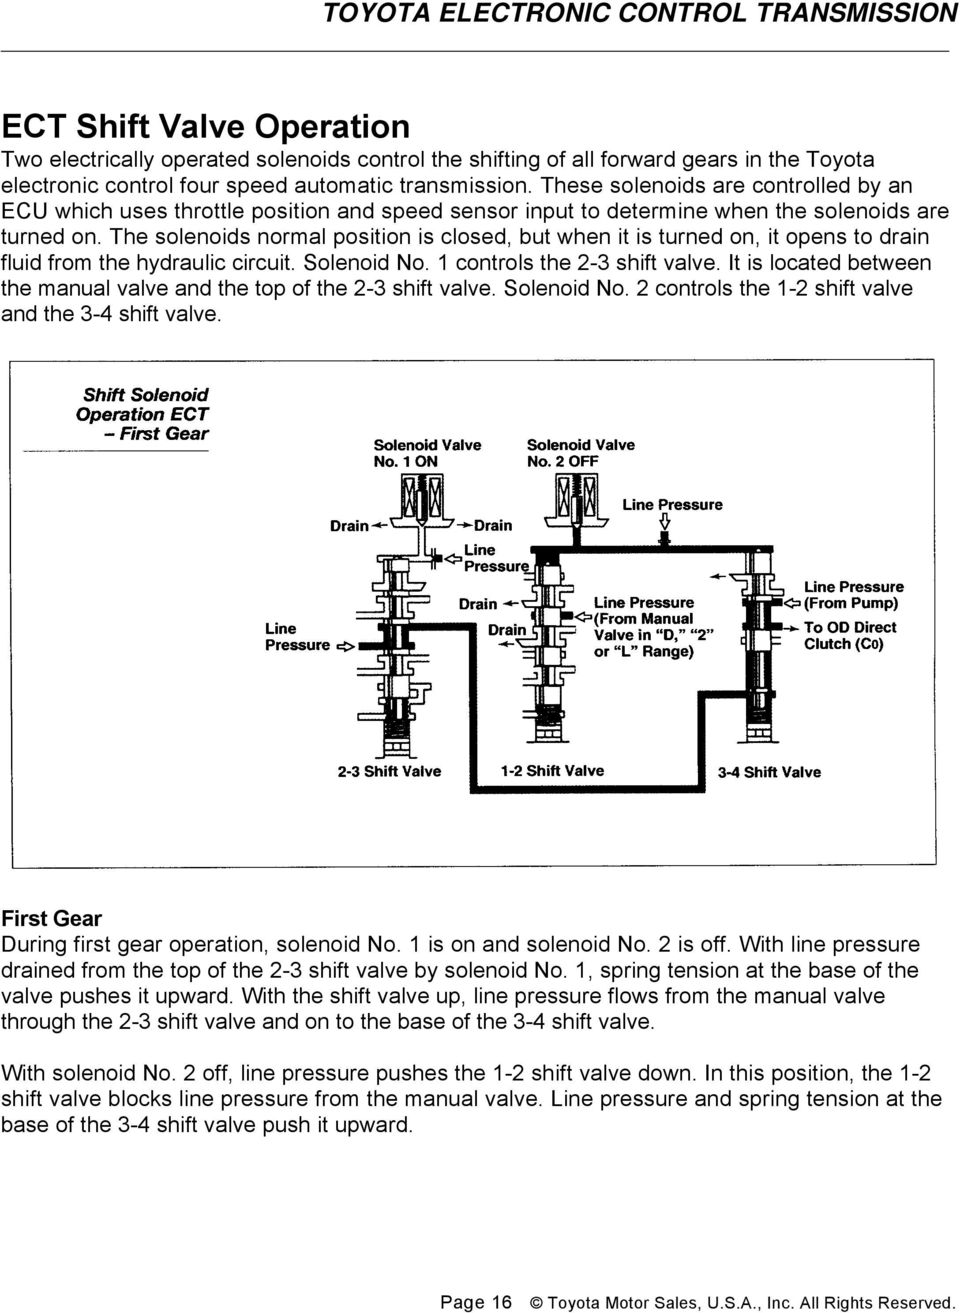 Toyota Electronic Control Transmission Pdf 48re Throttle Valve Actuator Wiring Diagram The Solenoids Normal Position Is Closed But When It Turned On Opens